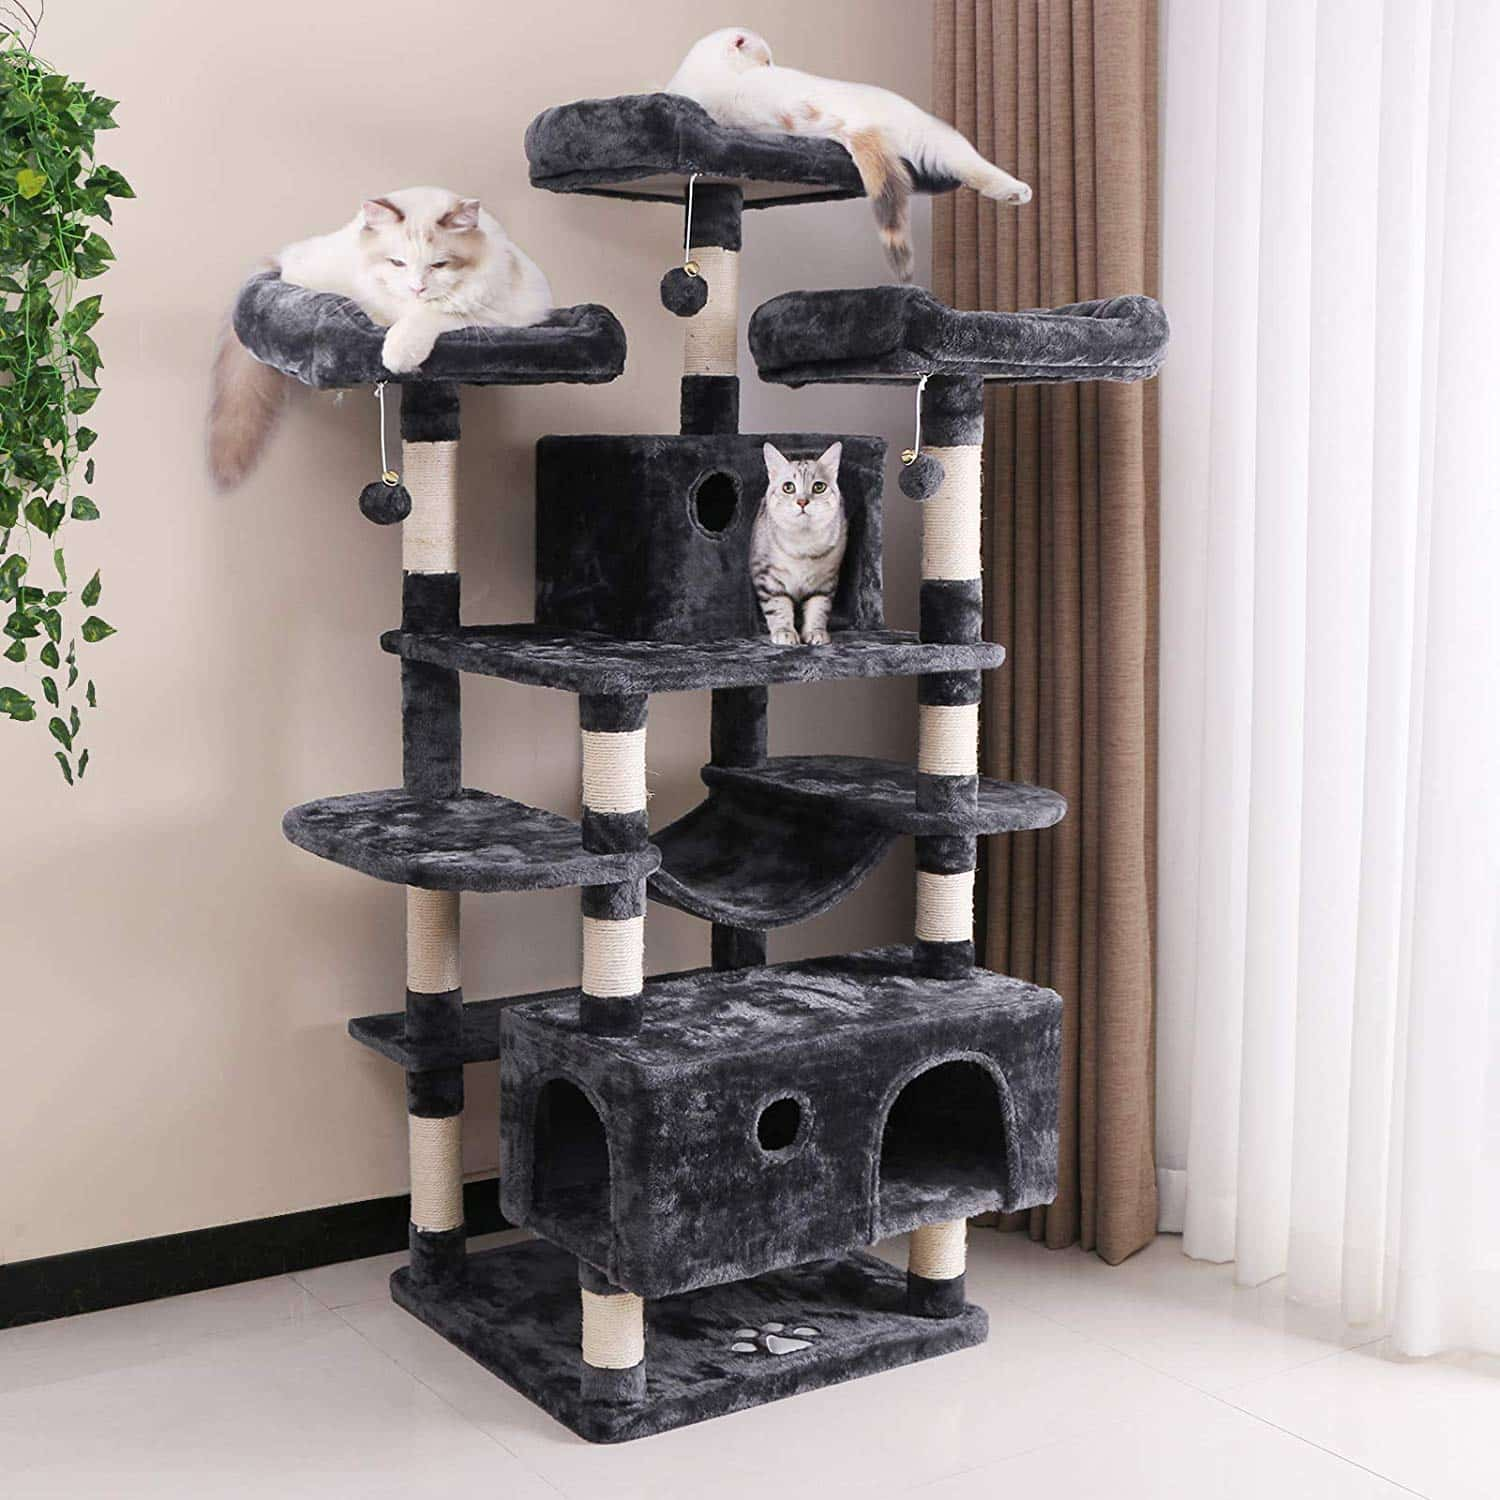 12. BEWISHOME Large Cat Tree Condo